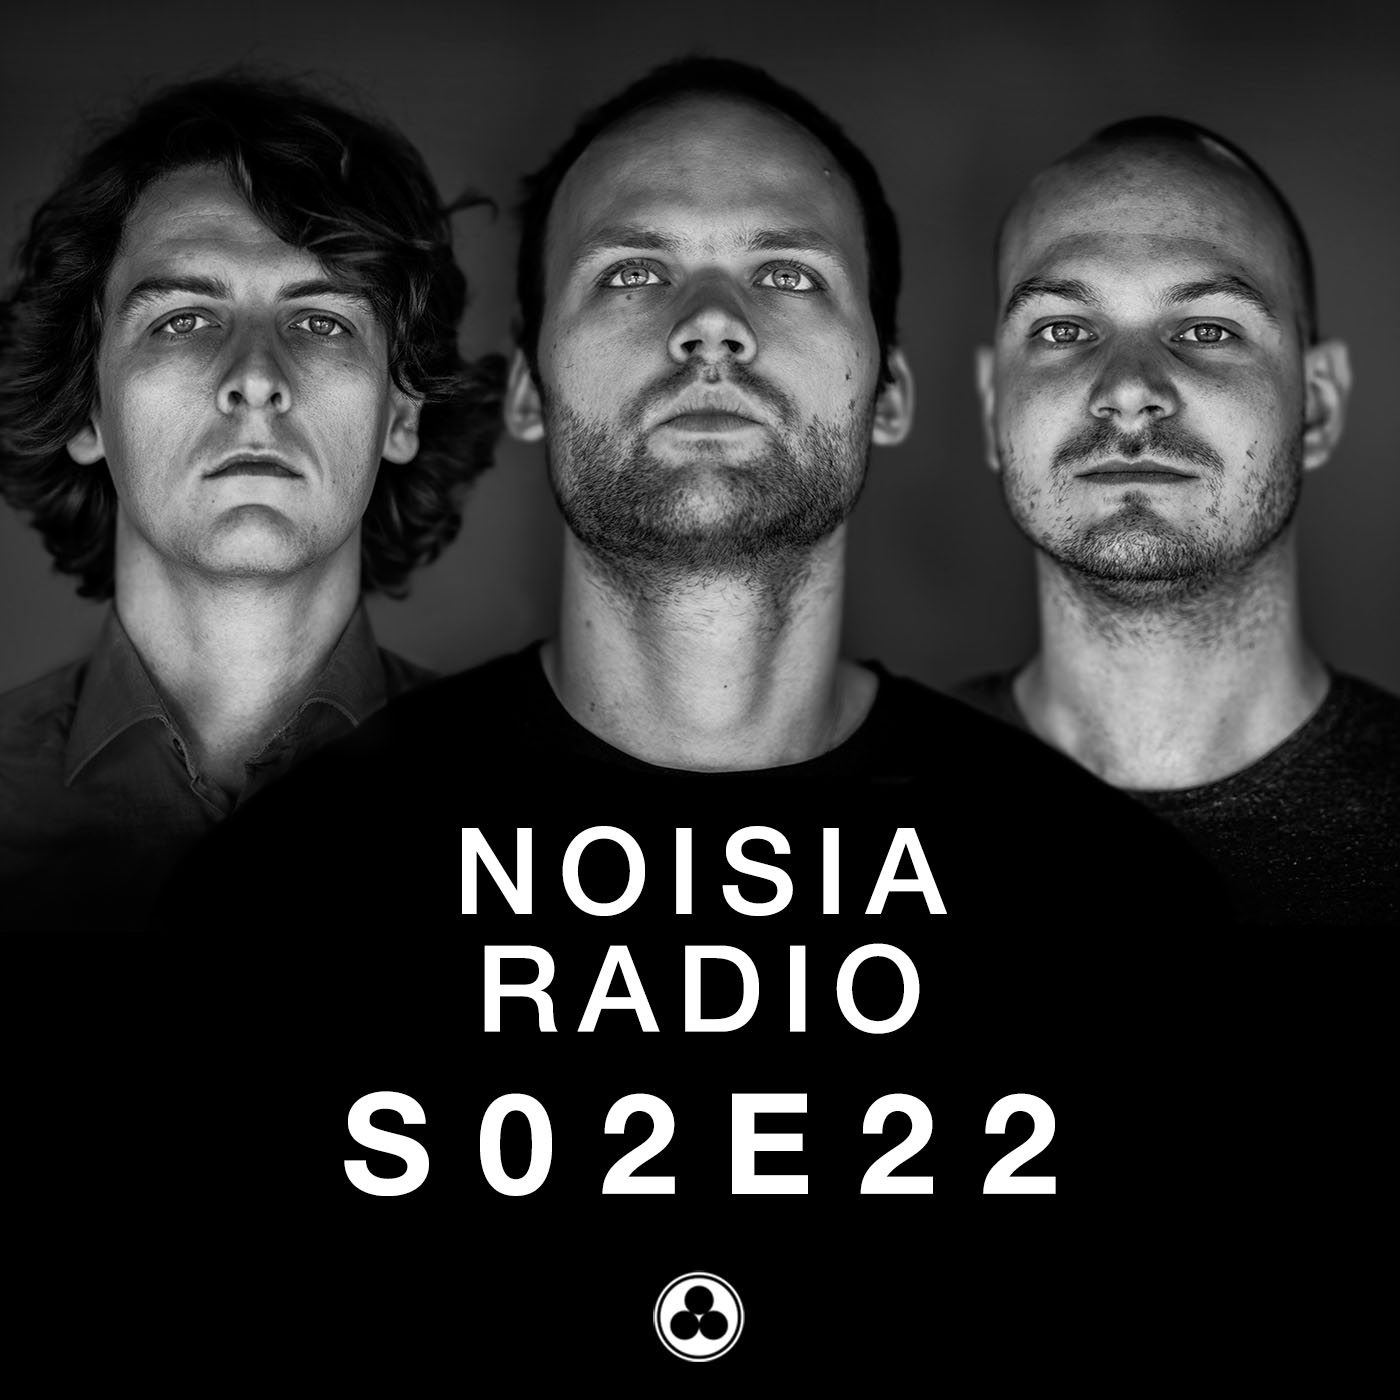 Noisia Radio S02E22